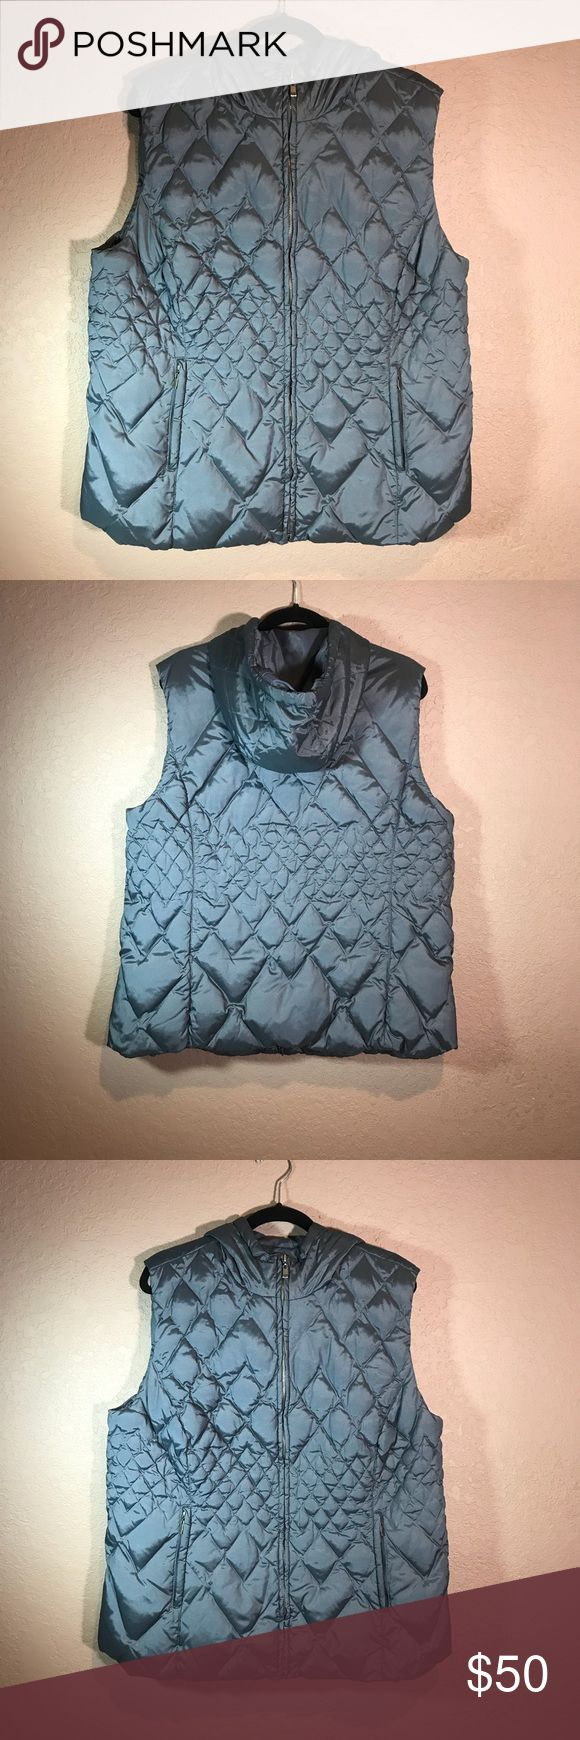 Lane Bryant plus size hooded puffed vest 18/20 Lane Bryant plus size puffer vest hooded pre loved in p effect Condition worn once on a trip to NY lane bryant Jackets & Coats Puffers